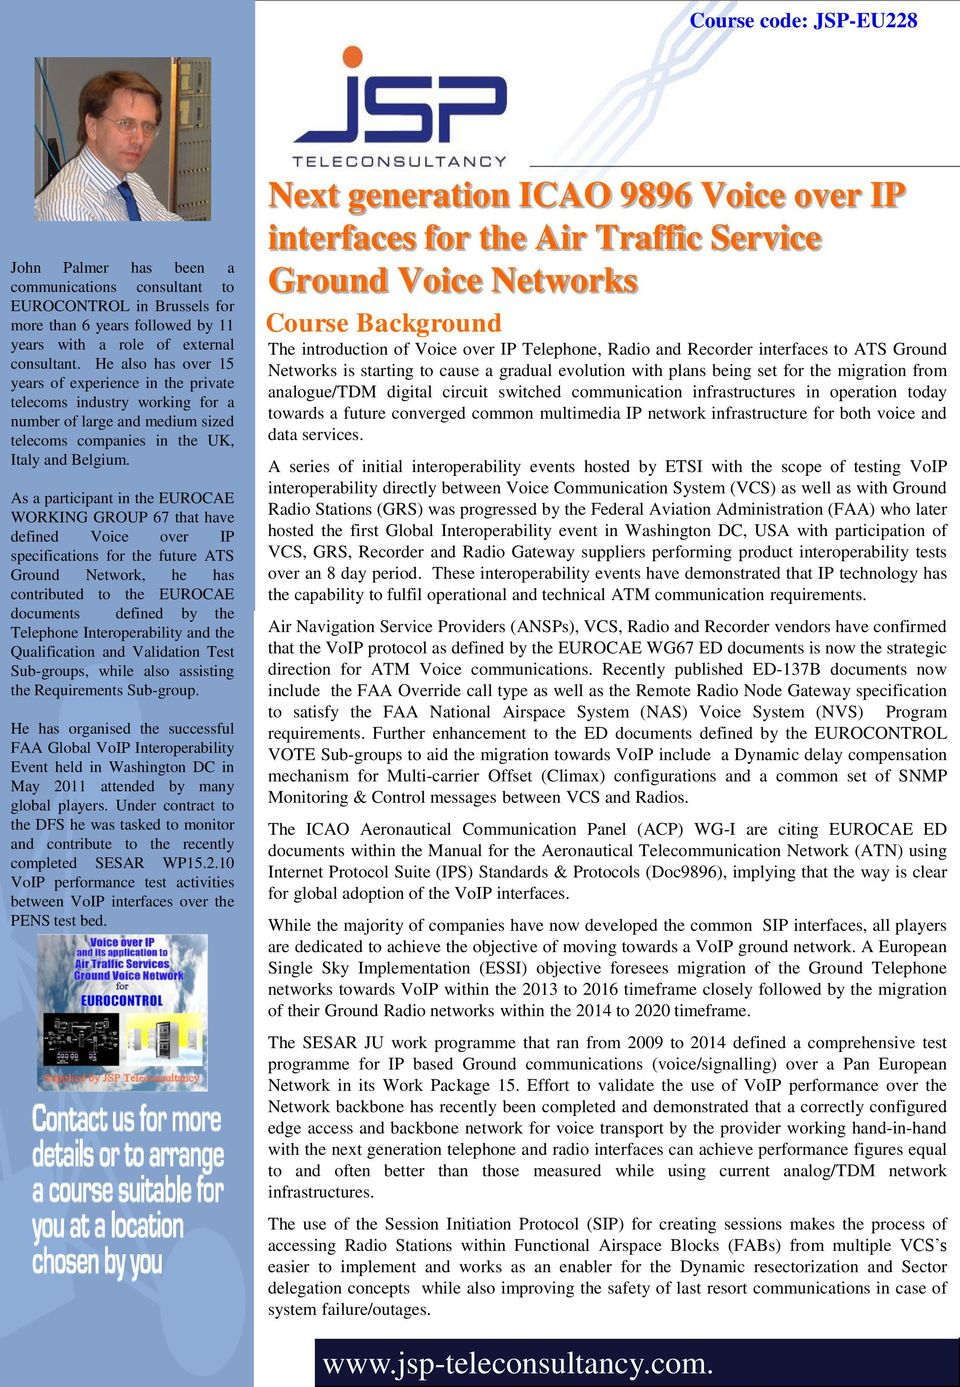 Next generation ICAO 9896 Voice over IP interfaces for the Air